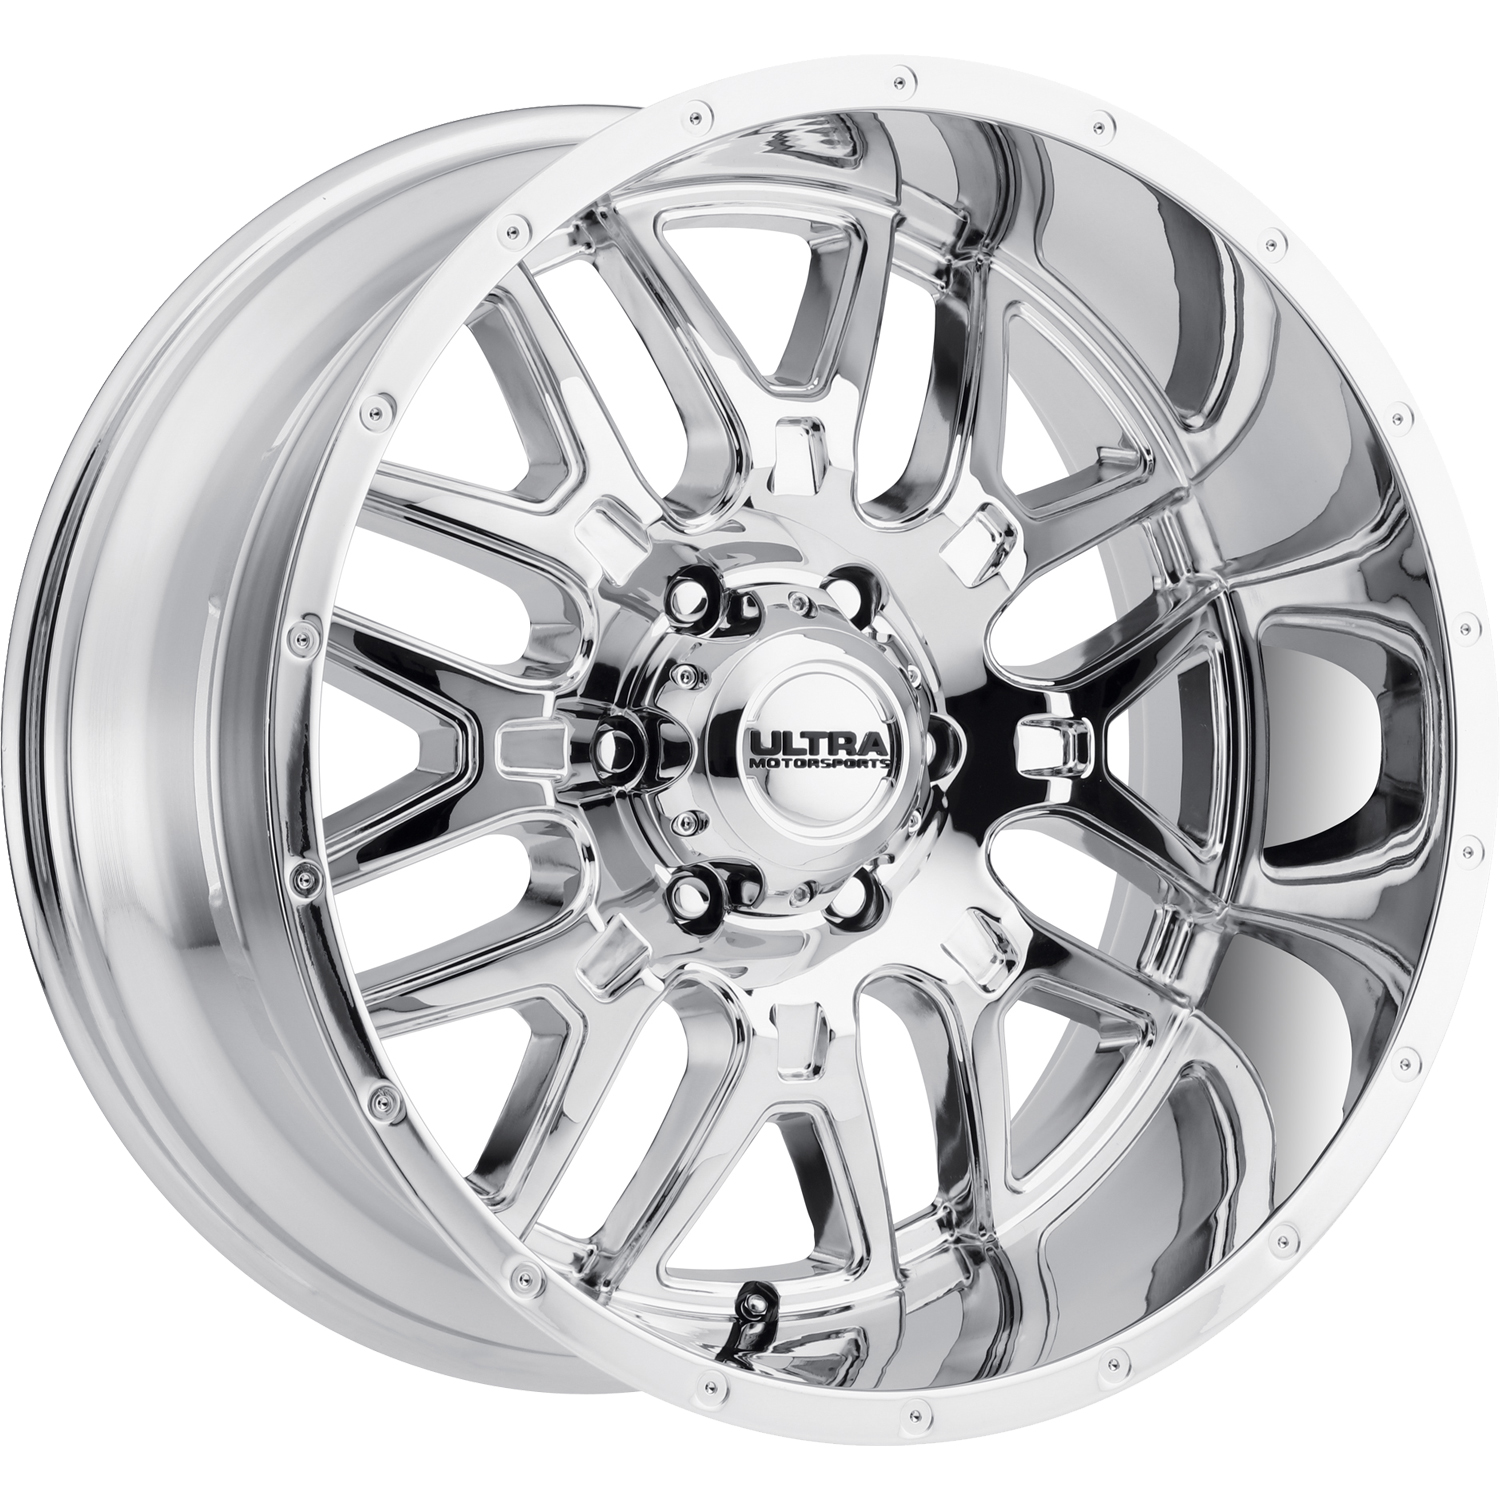 Ultra Hunter 18x9  12mm & 24x12  44mm | 203 8973C12 & 203 2473C44